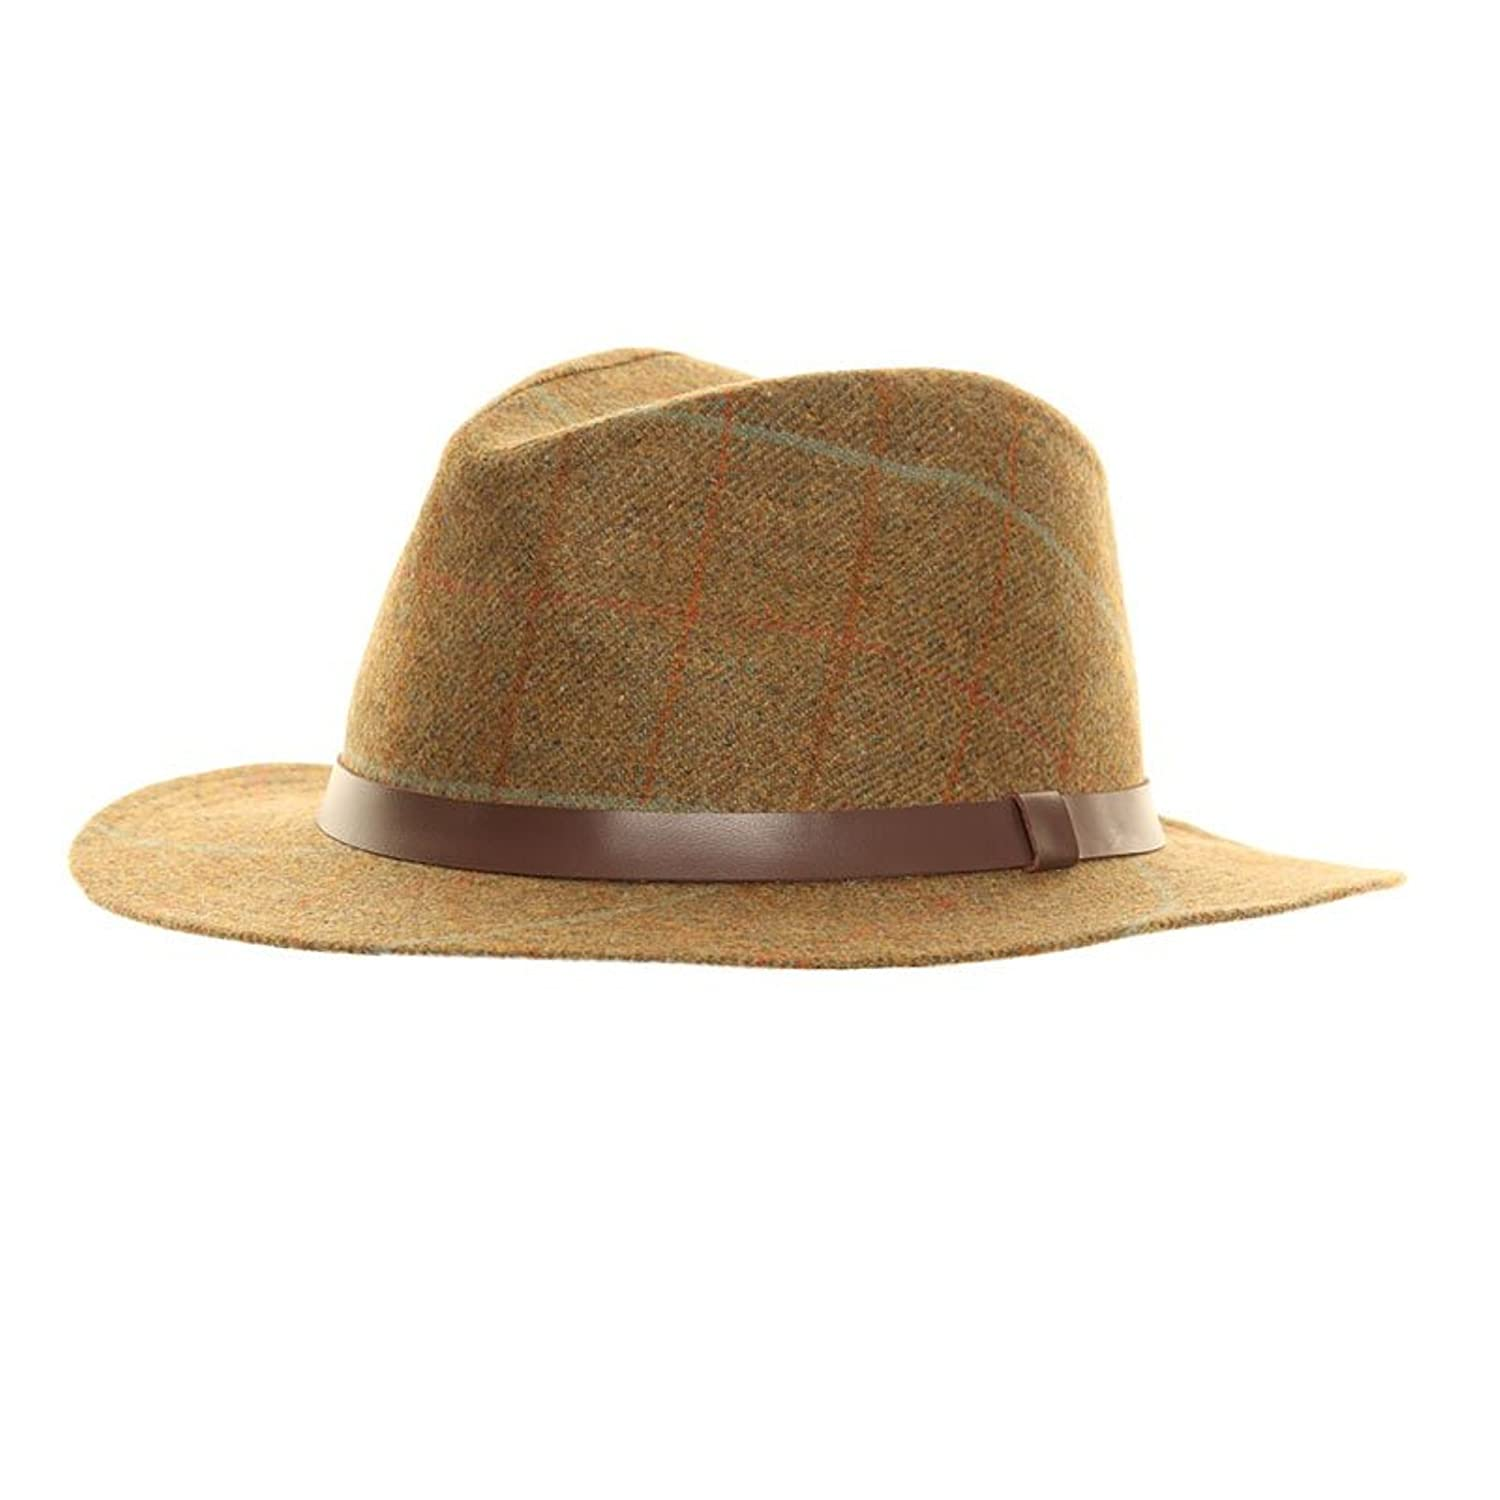 Unisex High Quality Teflon Covered Waterproof Tweed Felt Fedora Trilby Hat With 100% Wool